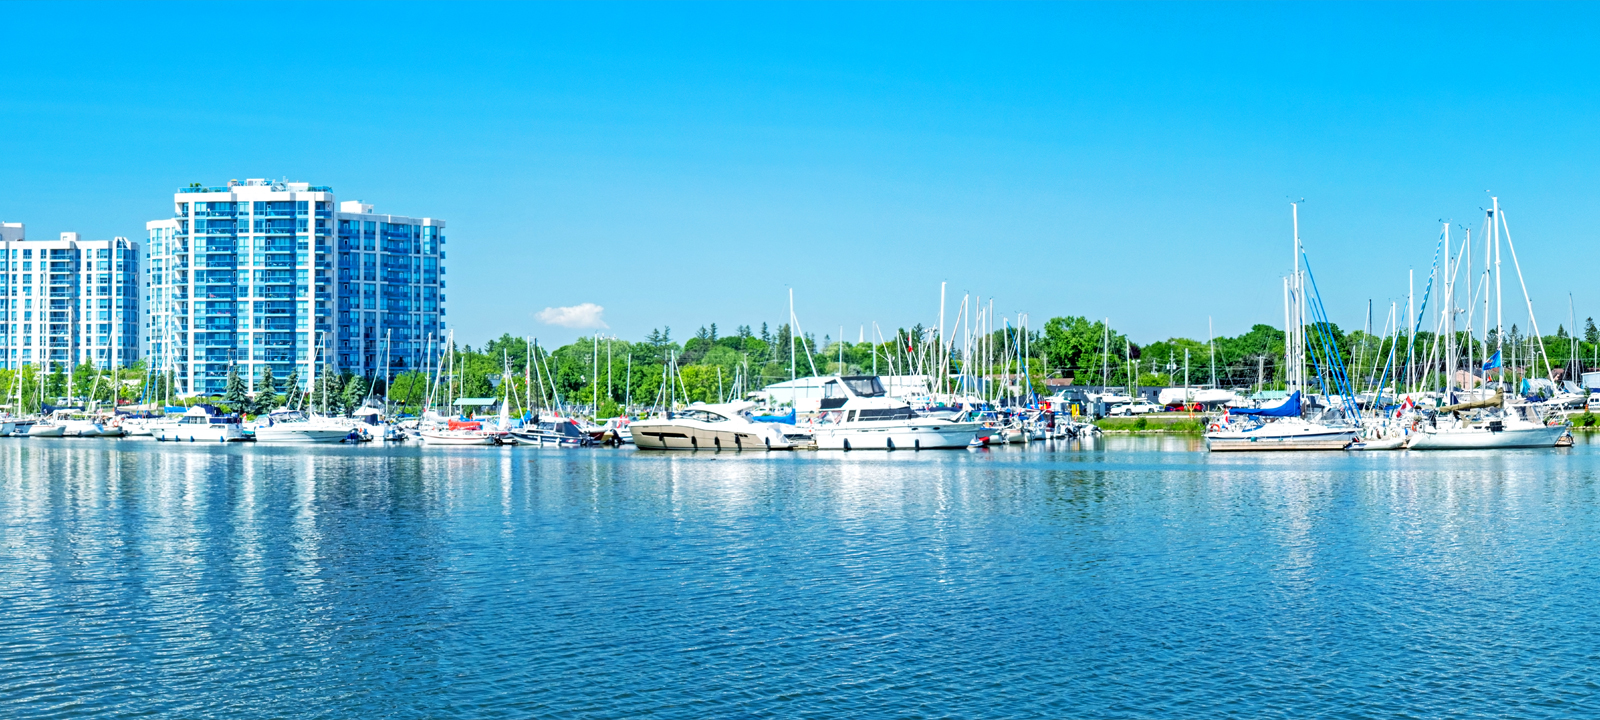 Reflections of a building and boats in the water of the Whitby Marina on Lake Ontario.